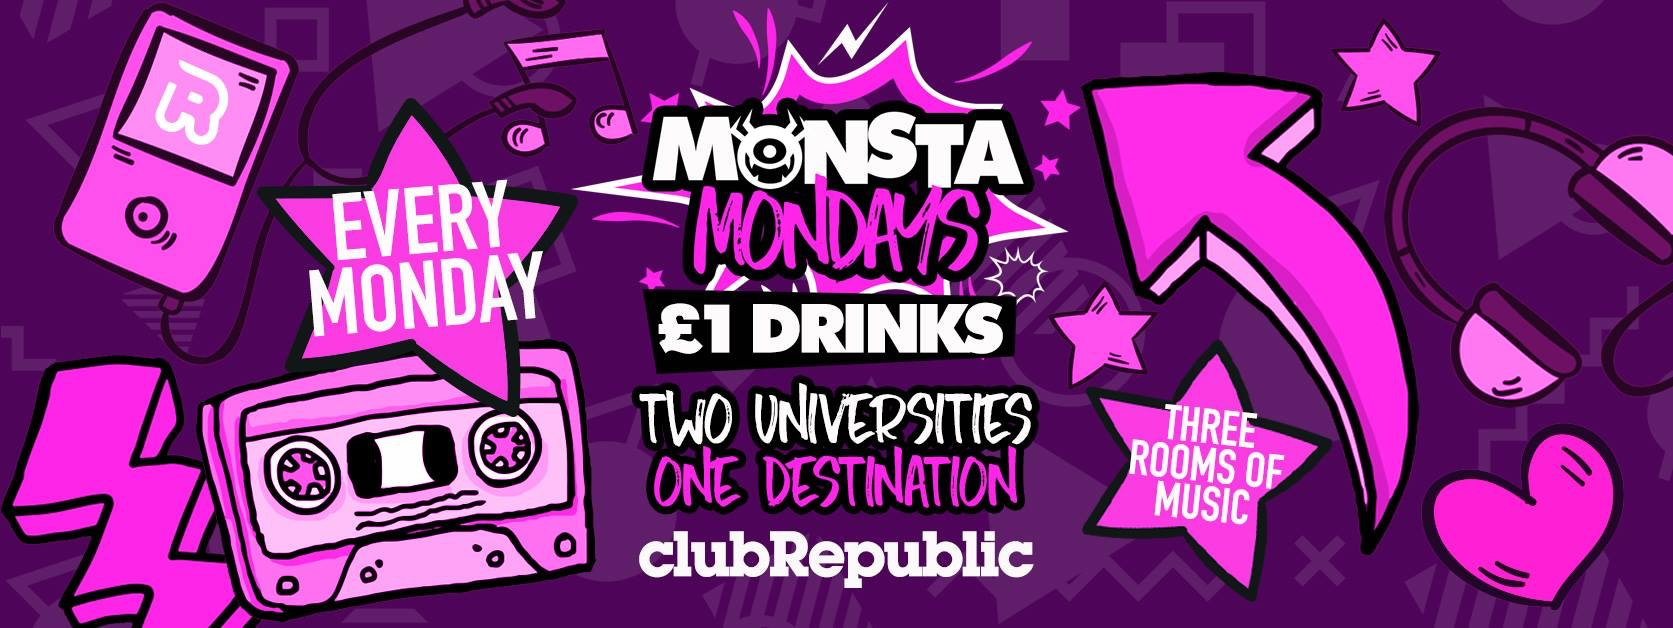 ★ Monsta Mondays ★ £1 Drinks ★ Club Republic ★ Tickets Now On Sale!